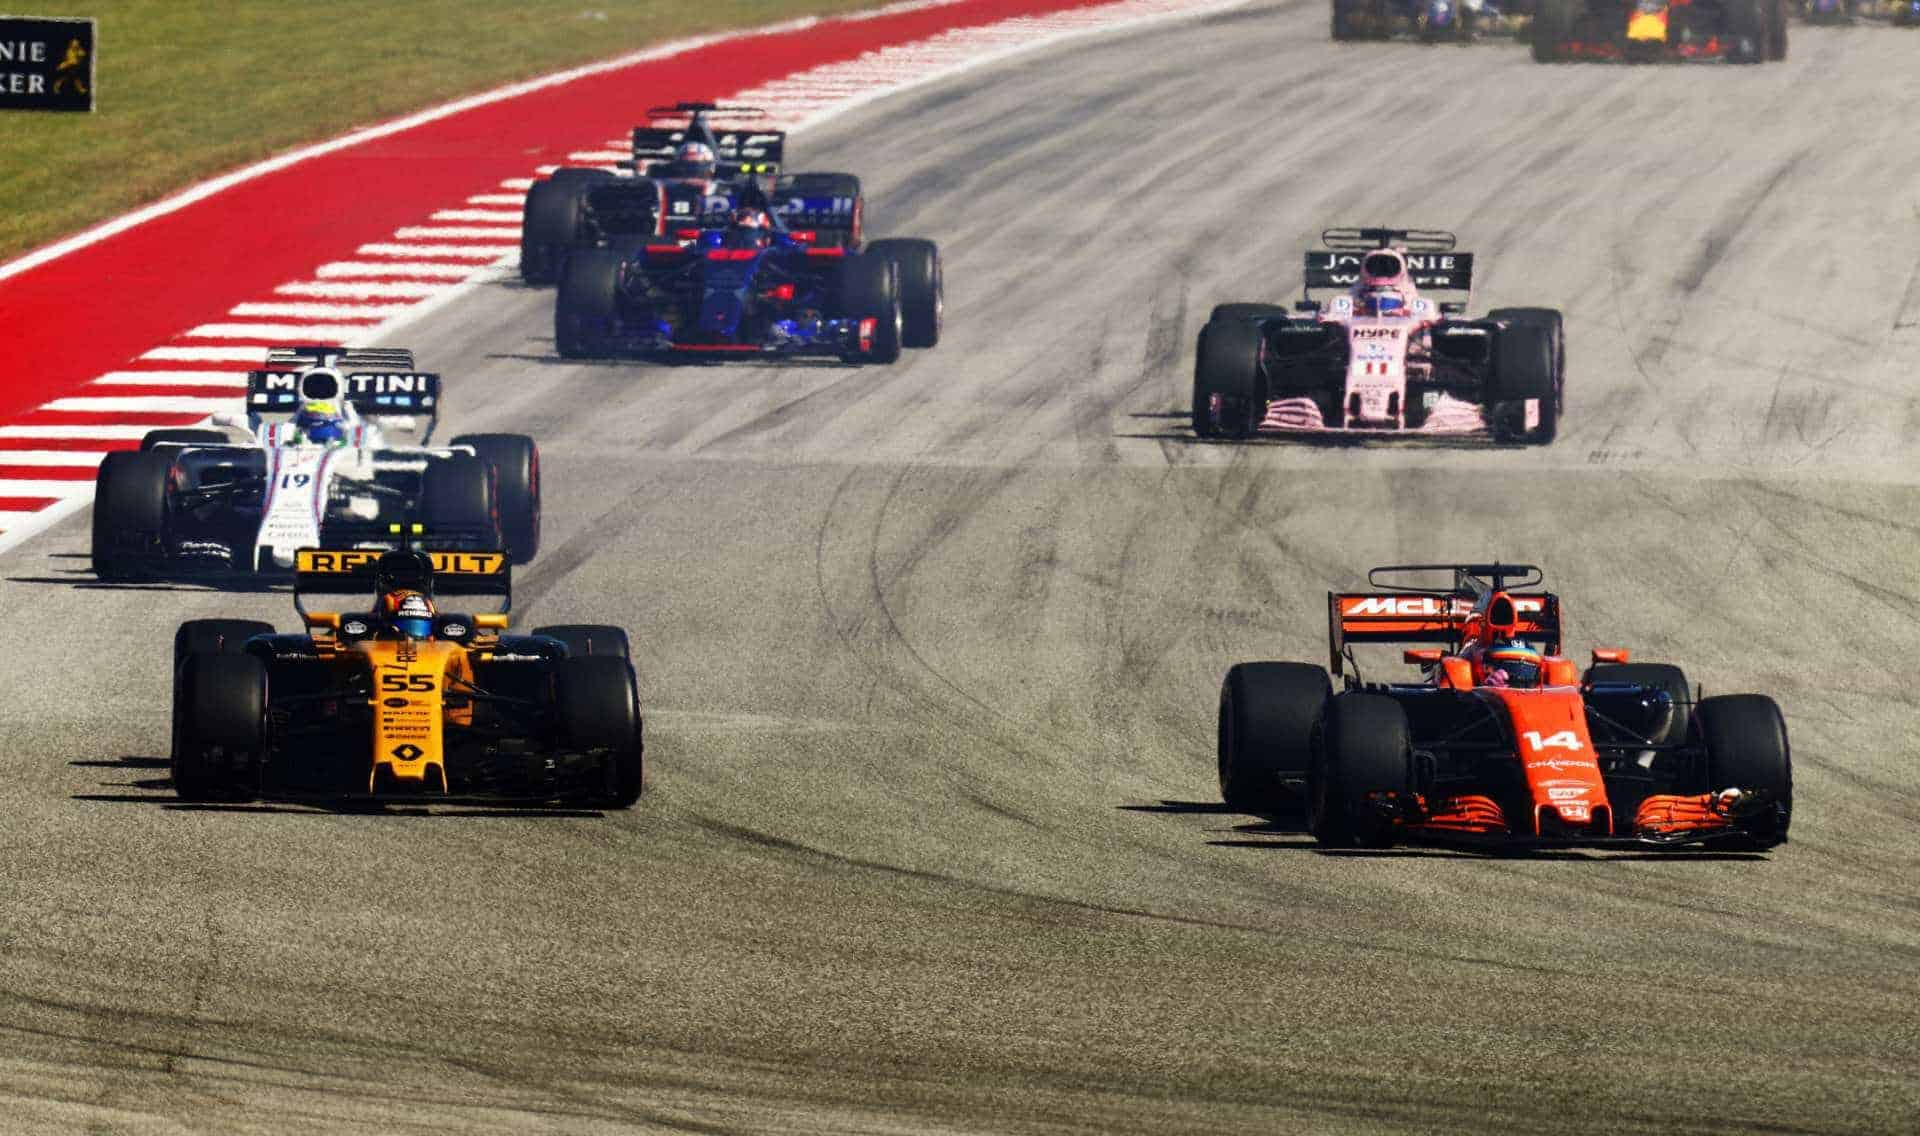 Alonso battles Sainz USA GP F1 2017 Austin Photo McLaren